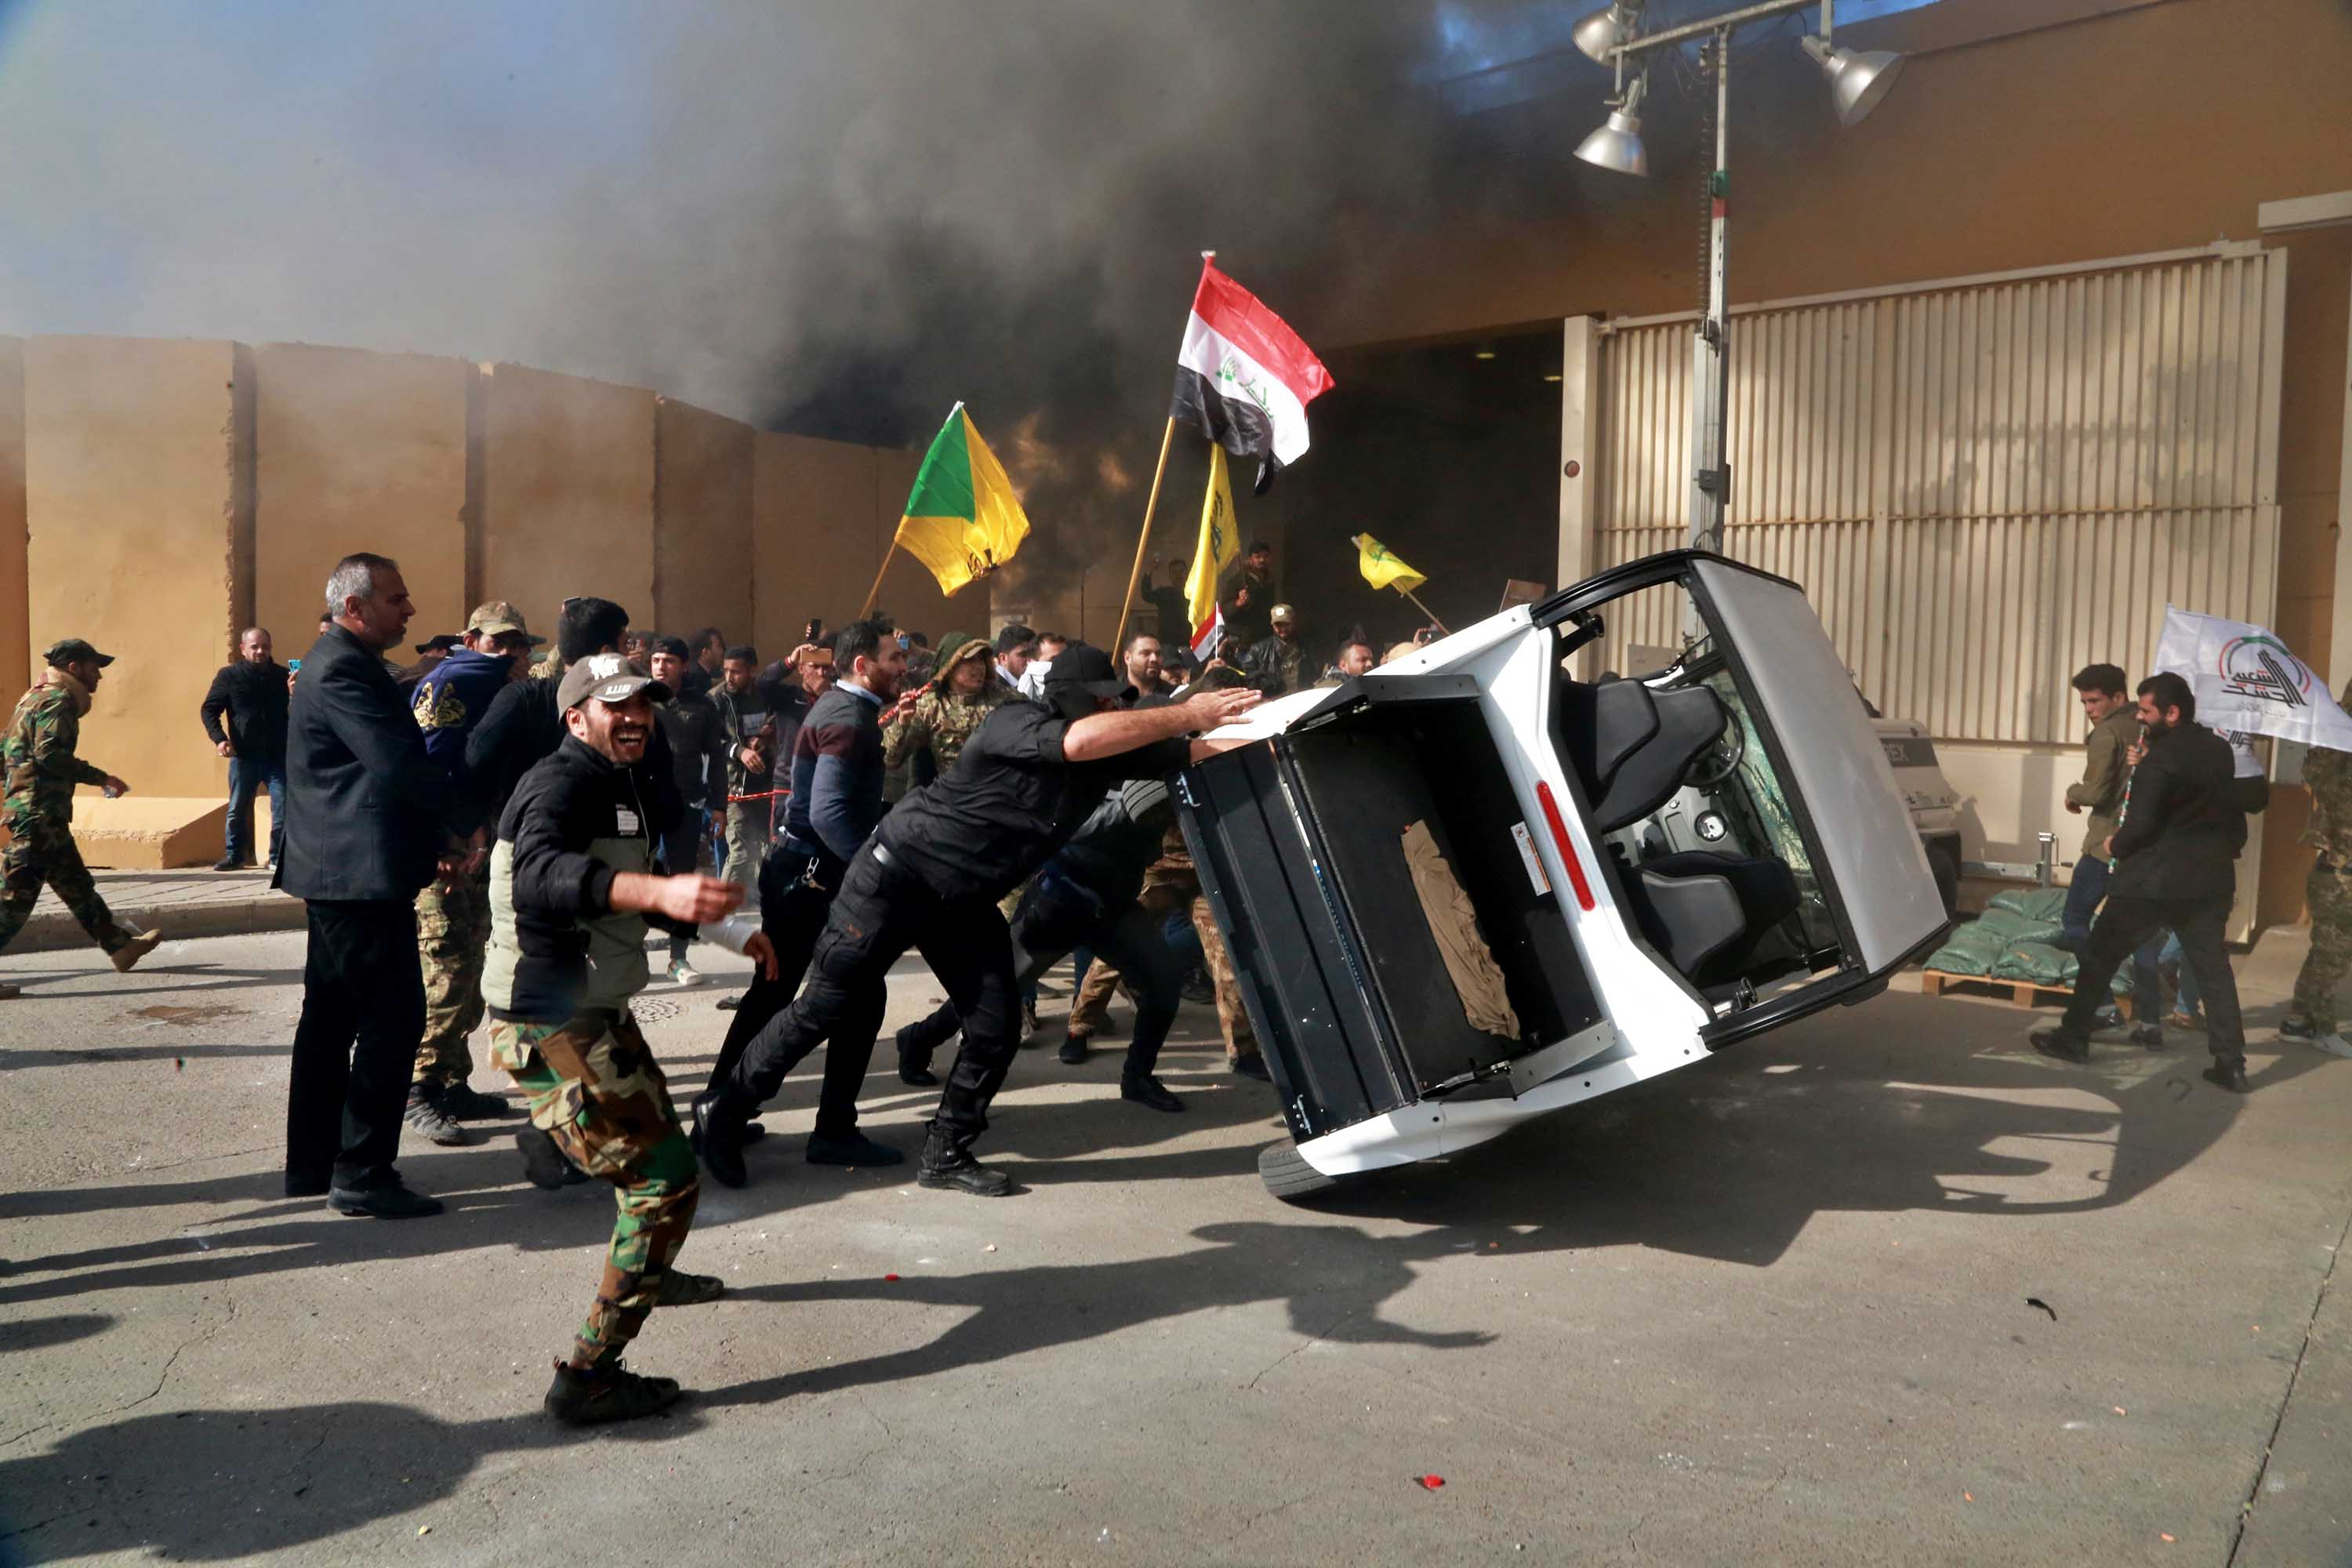 Protesters damage property inside the US Embassy compound in the Iraqi capital, Baghdad.